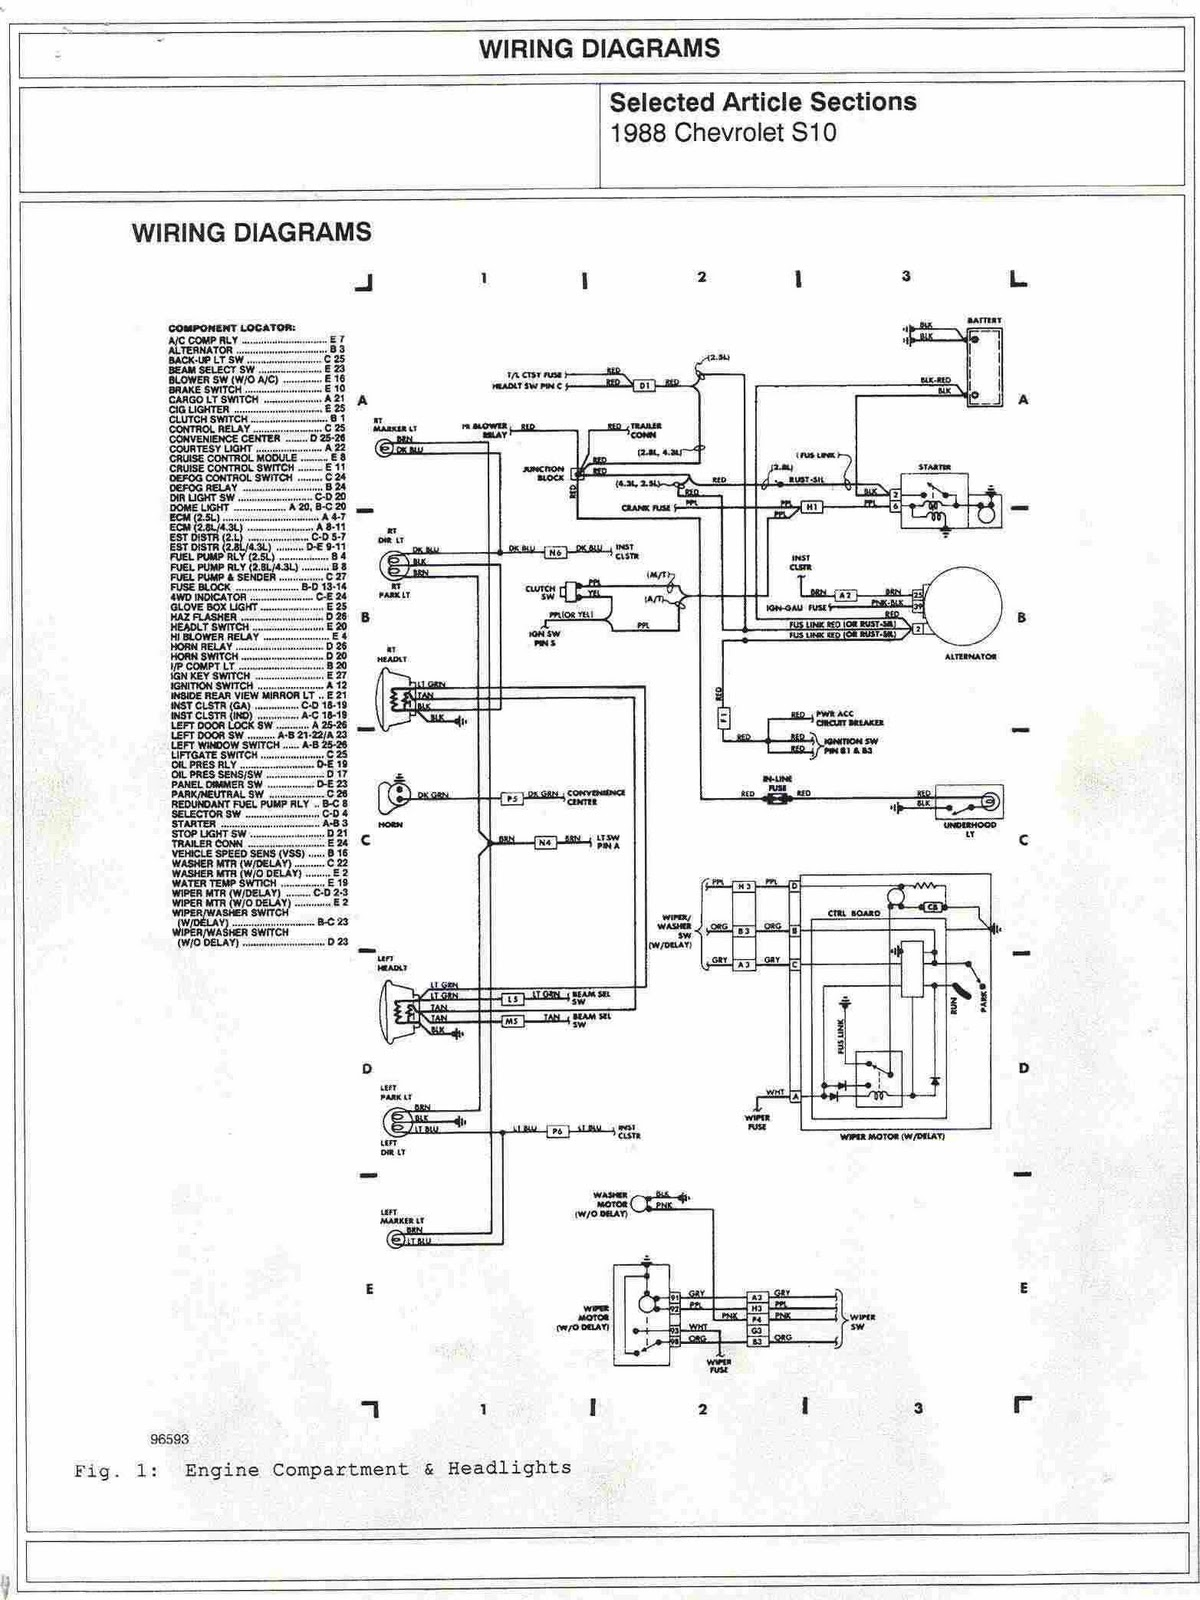 1988+Chevrolet+S10+Engine+Compartment+and+Headlights+Wiring+Diagrams 95 s10 wiring diagram 95 tahoe wiring diagram \u2022 wiring diagrams S10 Wiring Diagram for Gauges at panicattacktreatment.co